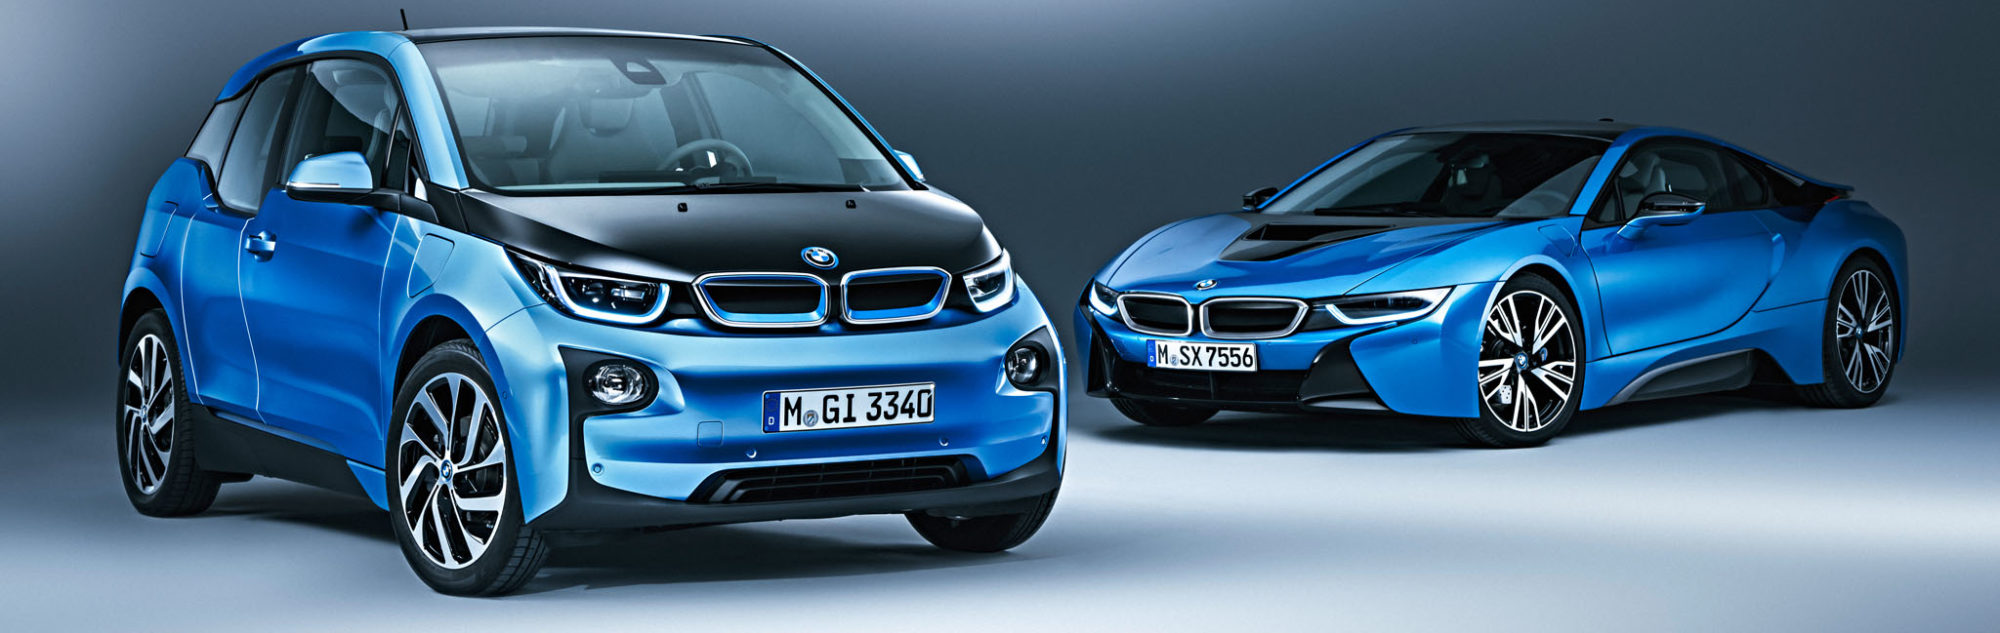 BMW i Cars | BMW Electric Cars | BMW i Owners